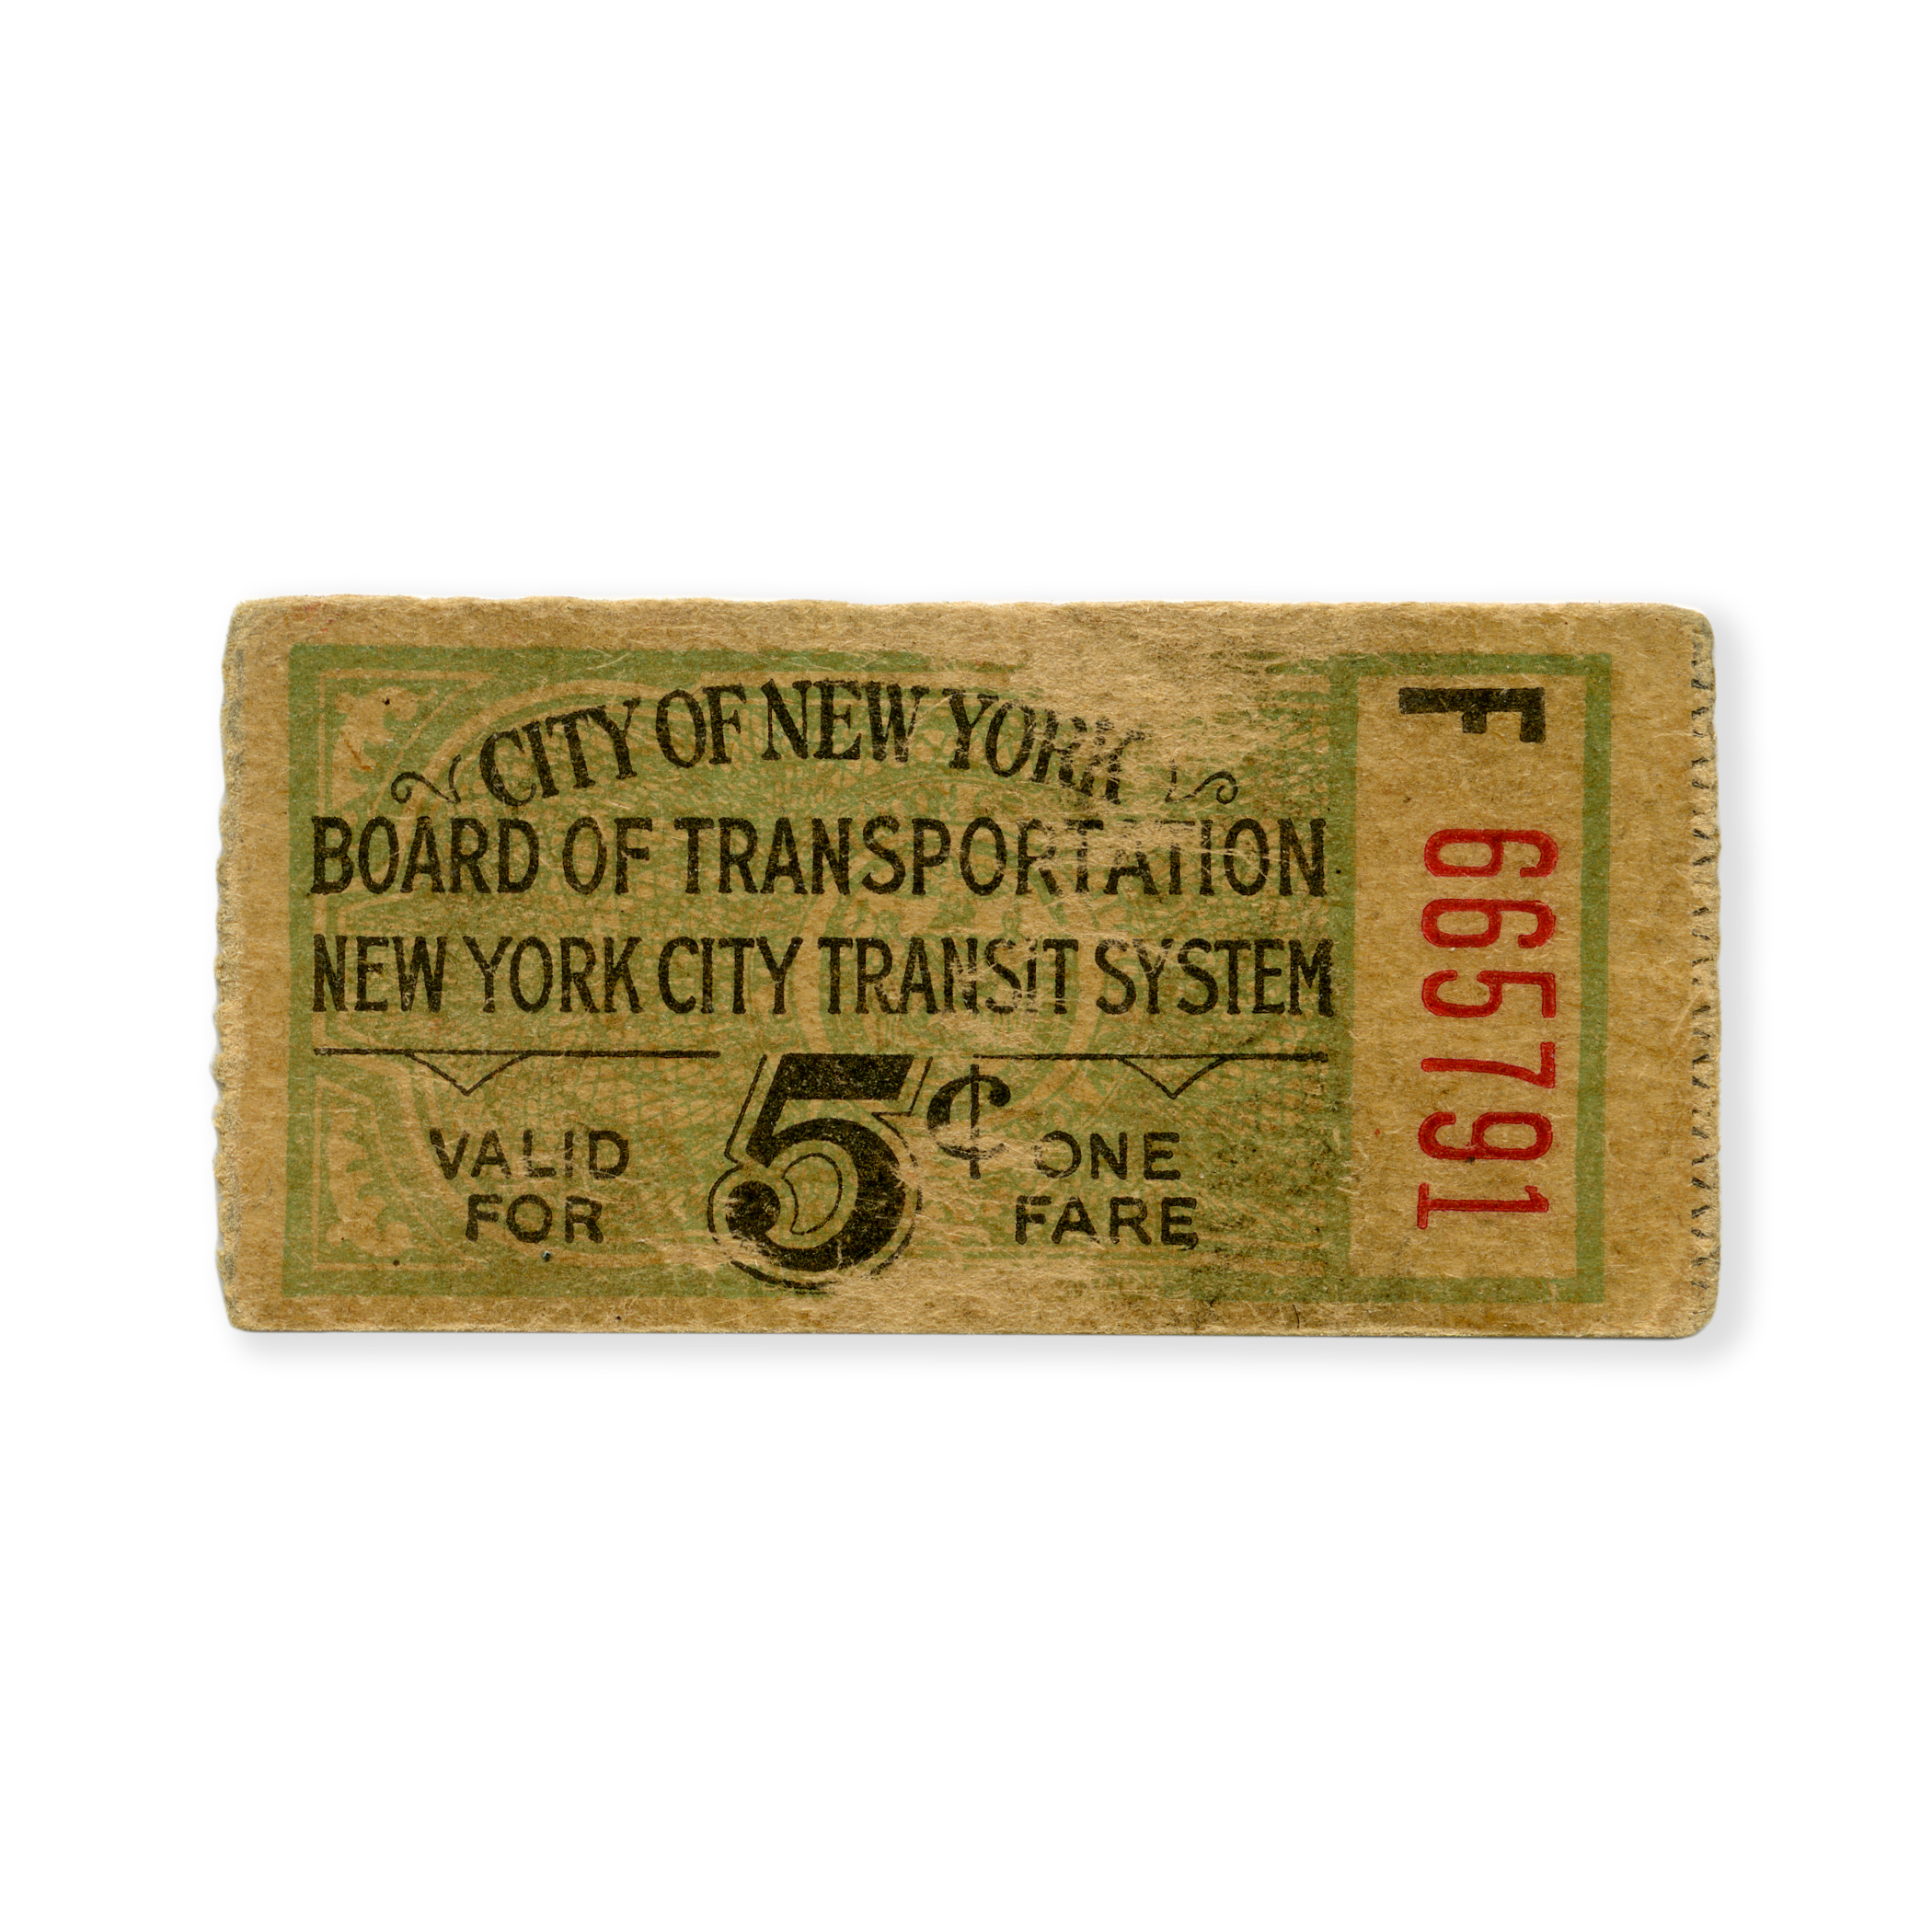 the_nycta_project_1942_nyc_board_transportation.jpg